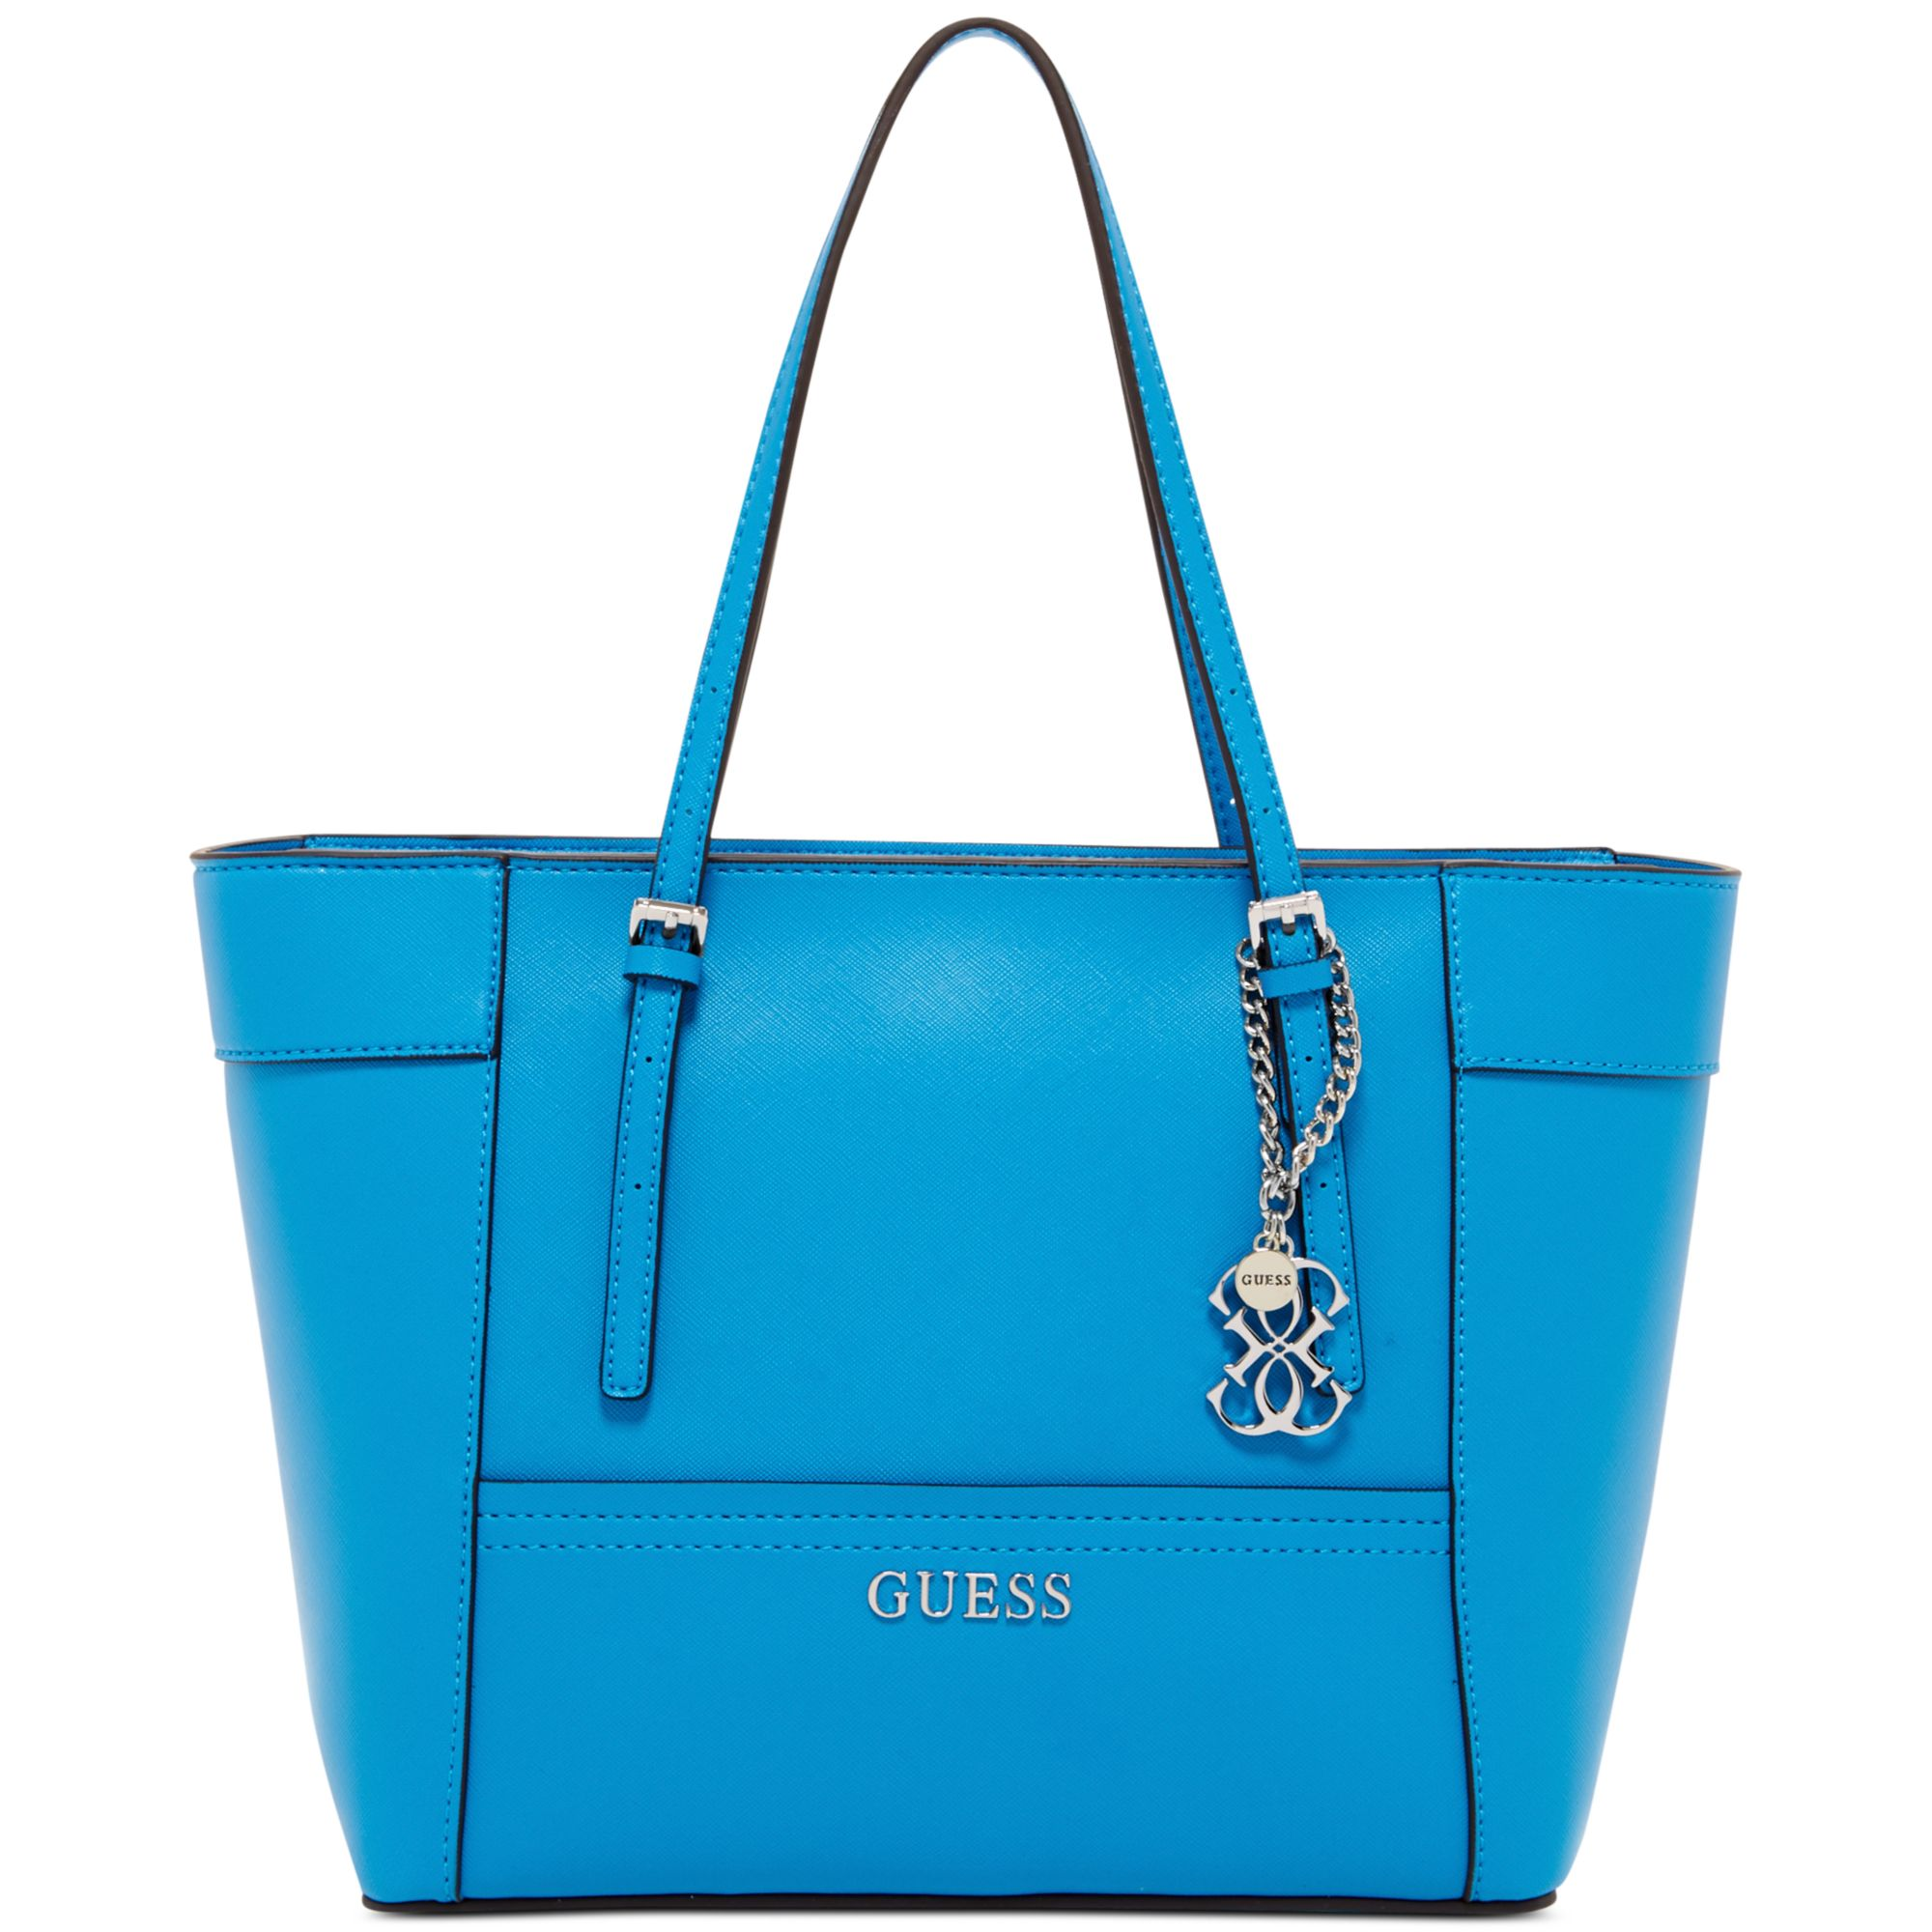 5e0055258a51 Lyst - Guess Delaney Small Classic Tote in Blue